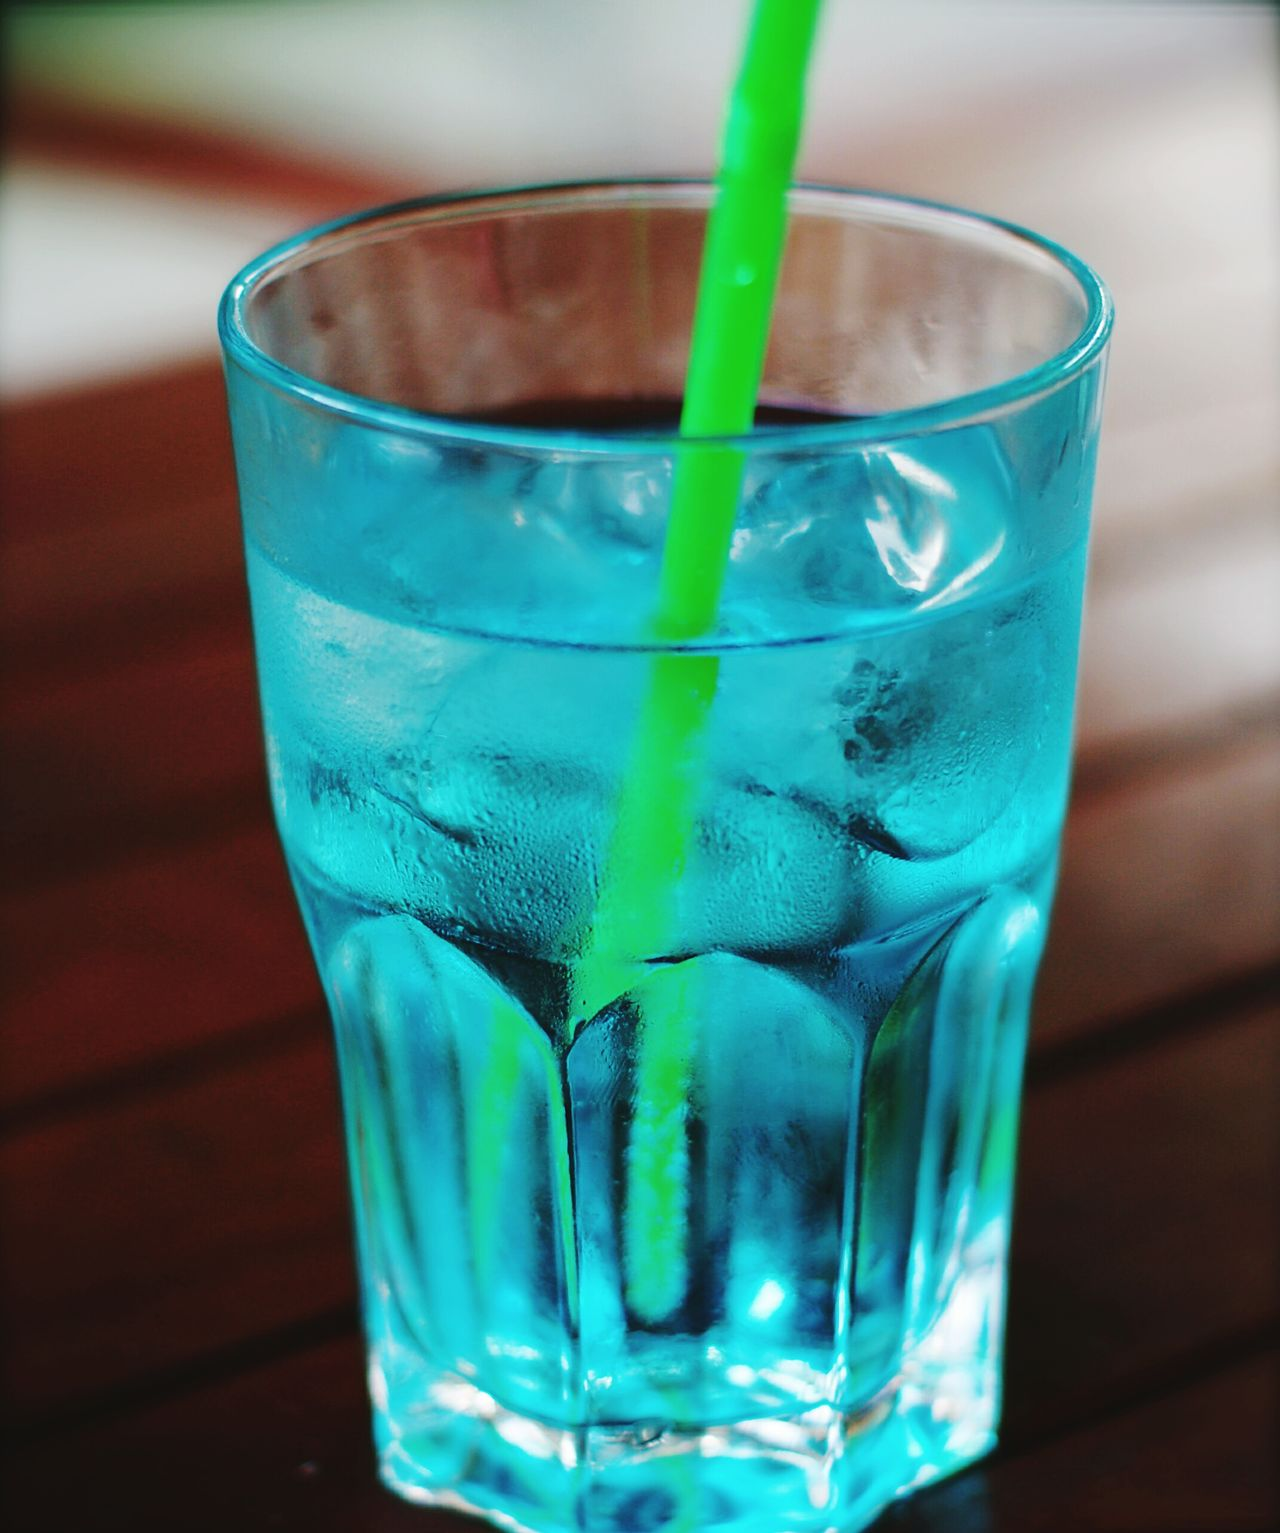 Blue Drink 🍹 Drinking Glass Drink Drinking Straw Refreshment No People Close-up Blue Freshness Outdoors Day Glass Alcohol Alcoholic Drink Vibrant Color Party Bar Food And Drink Summer Cocktail Alcopop Fun Drinks Bright Blue Fun Times Neon Life